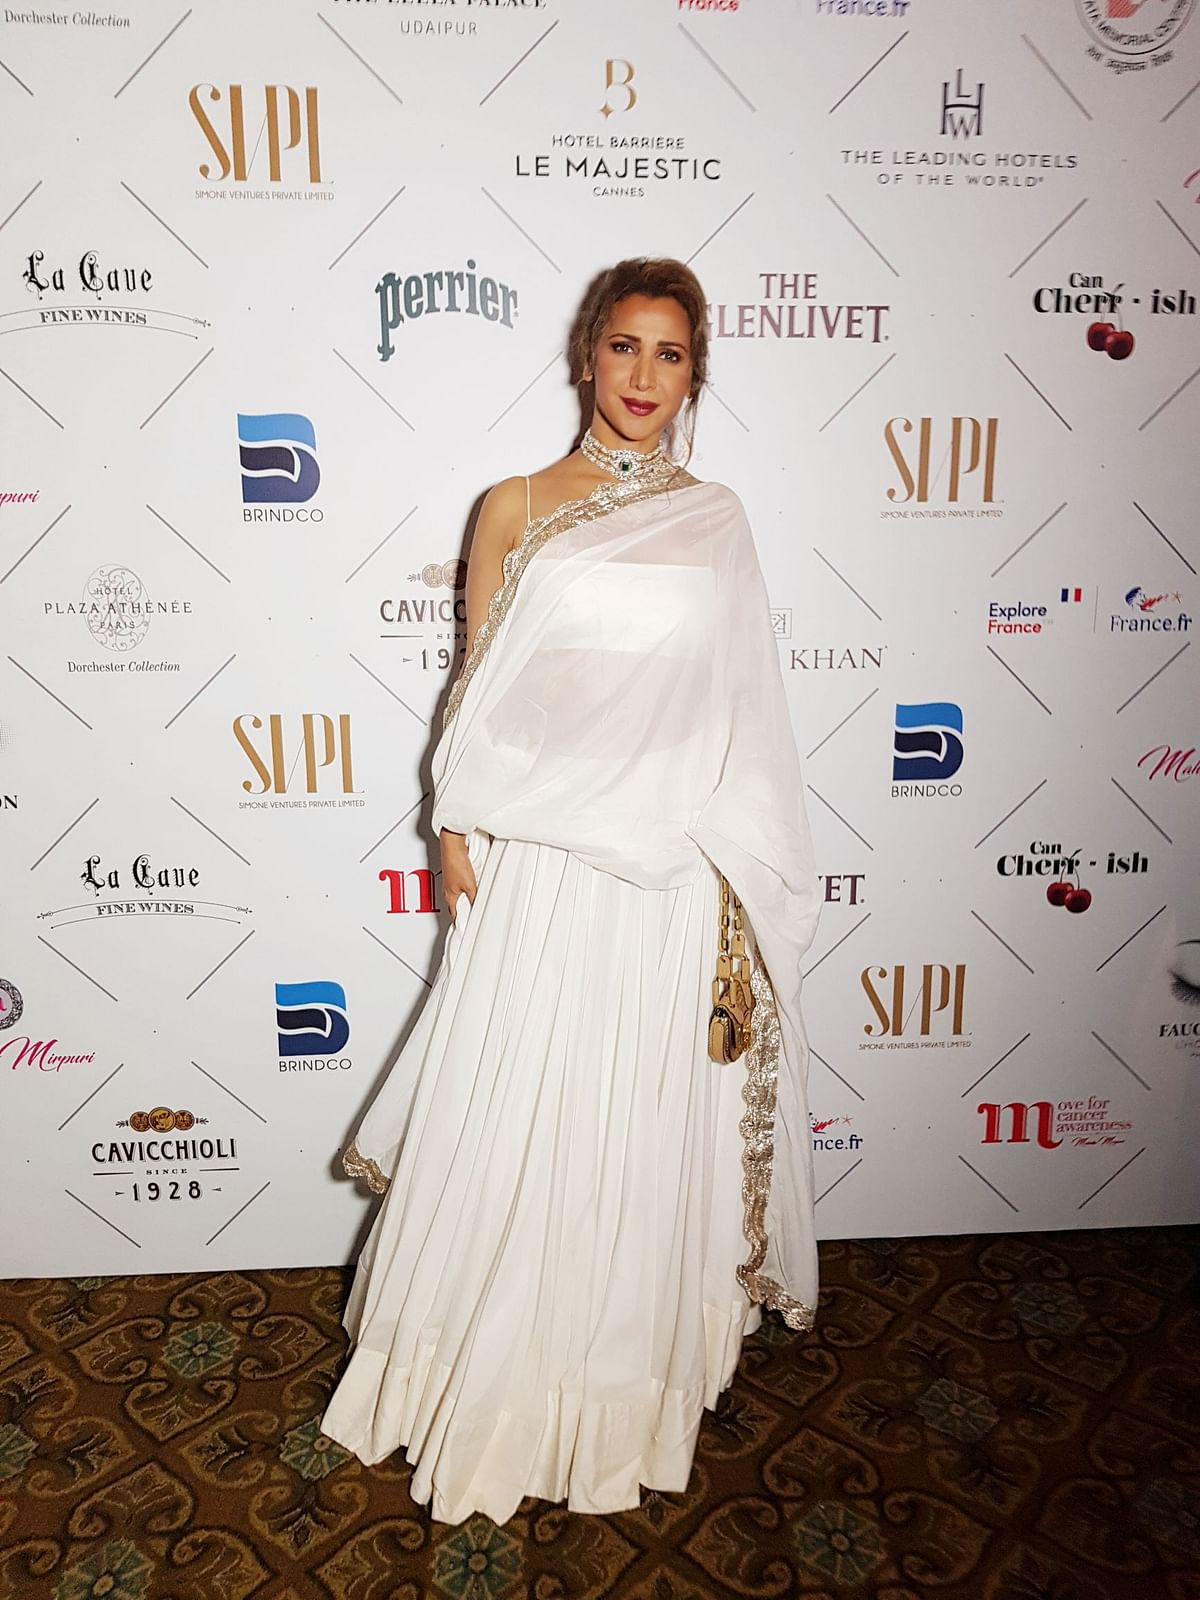 From Elle Beauty Awards 2019 to gala for a cause: How Mumbai partied this week